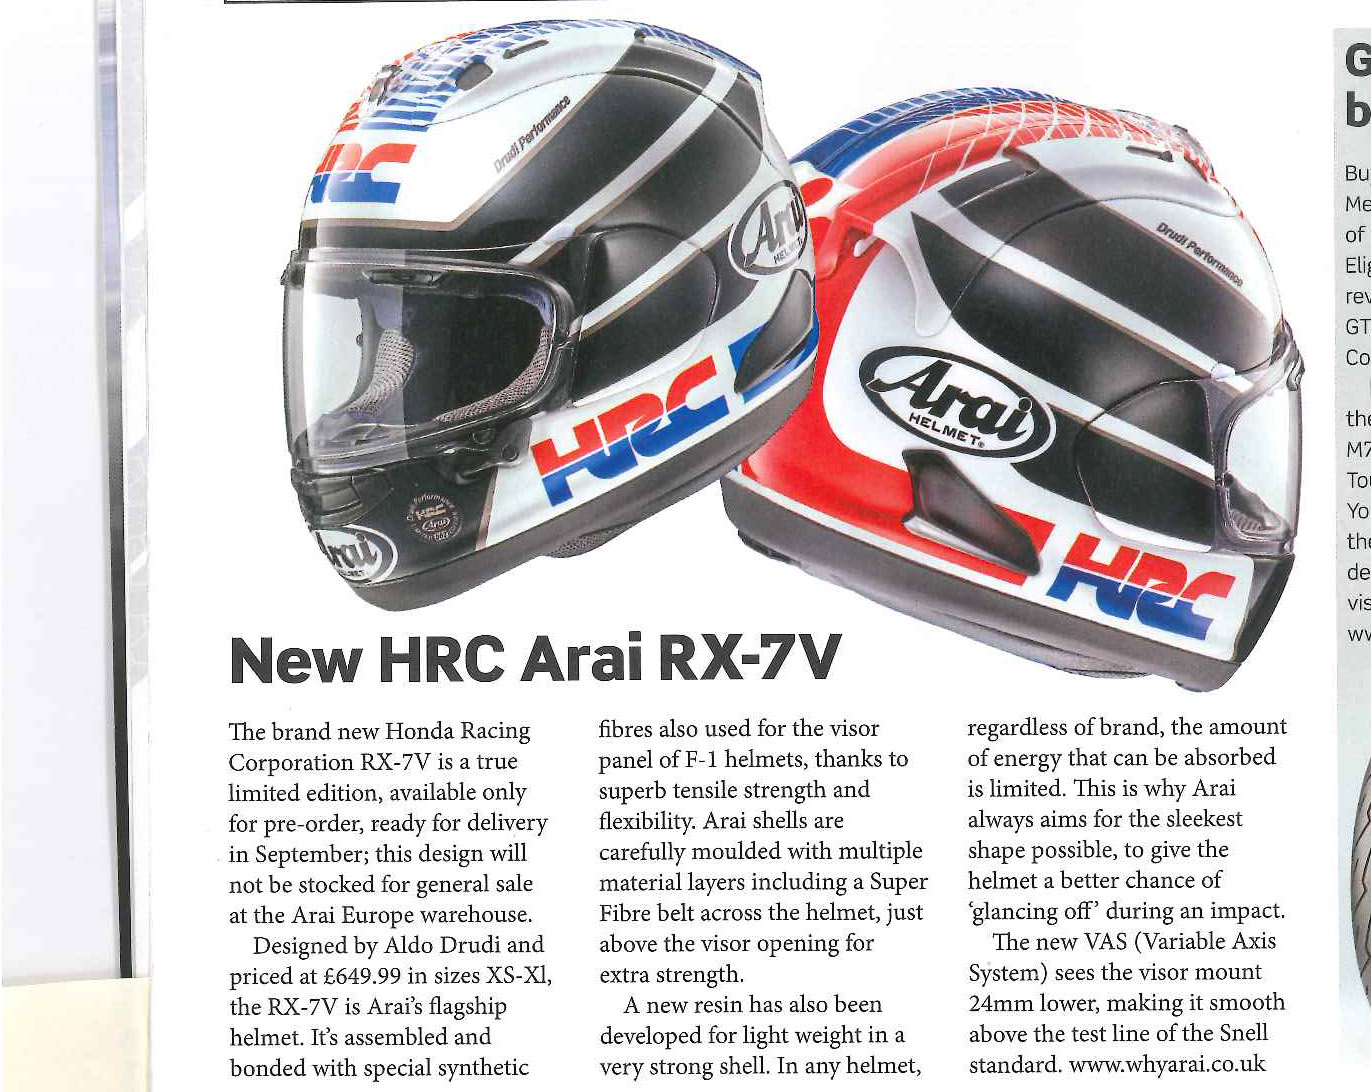 05441064 Motorcycle Sport and Leisure show Arai RX-7V HRC. The limited edition ...